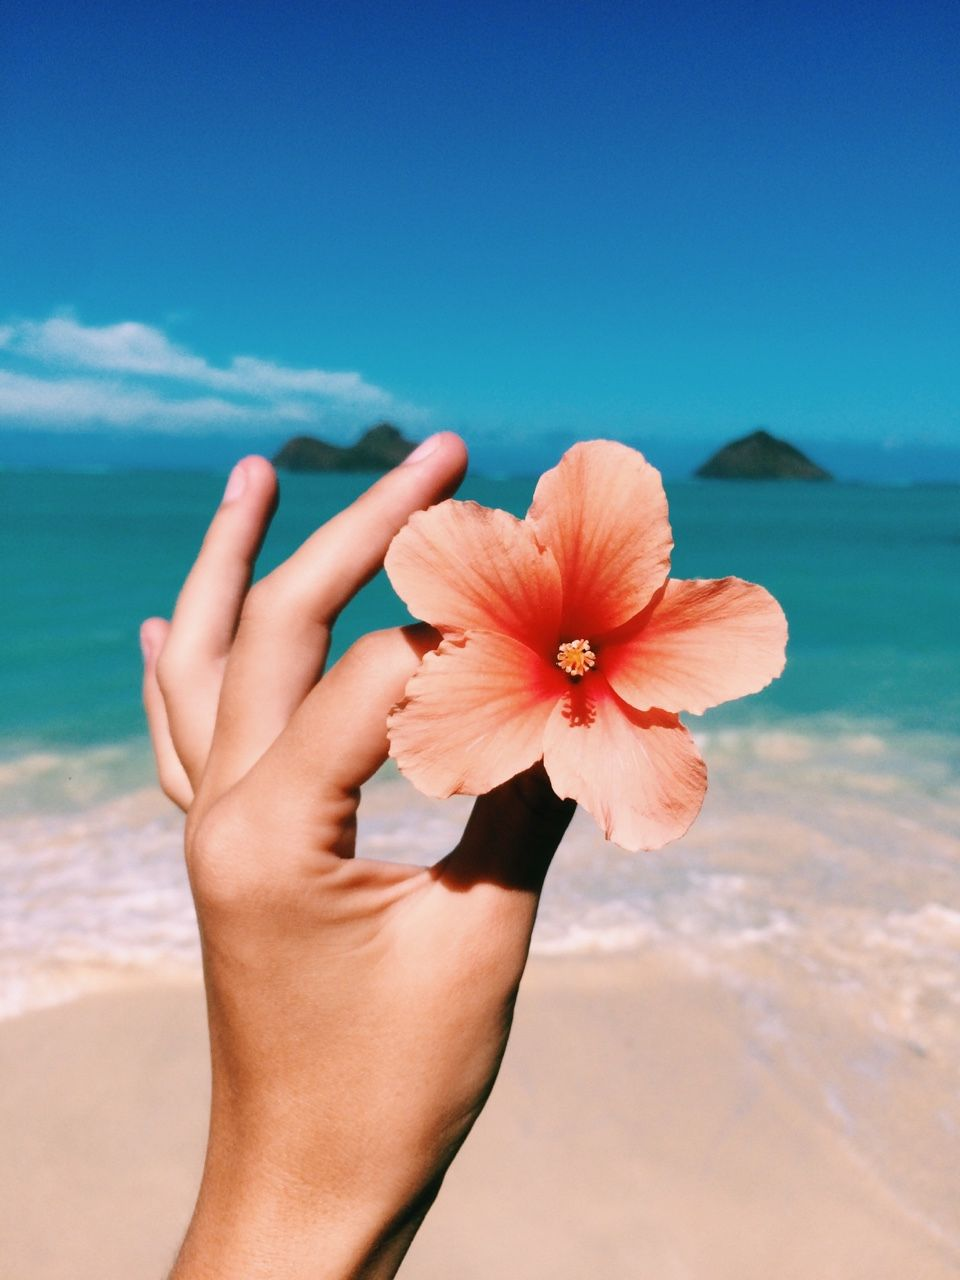 With A Tropical Breeze - storyofthislife: Paradise ...